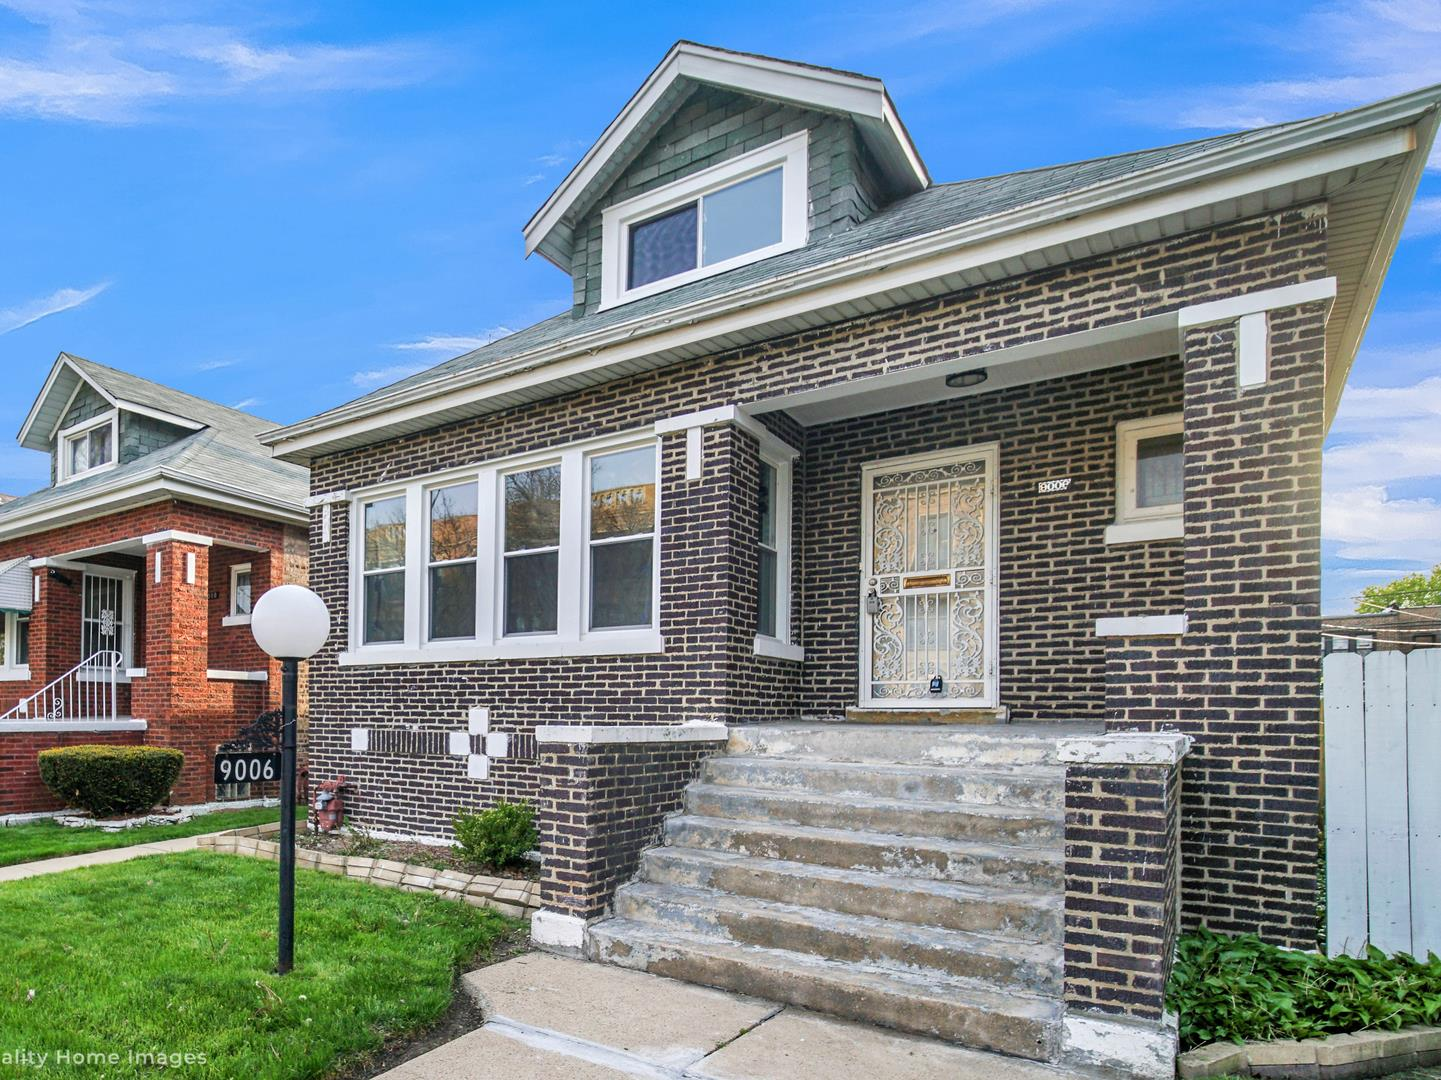 9006 S Throop Street, Chicago, IL 60620 - #: 10781762